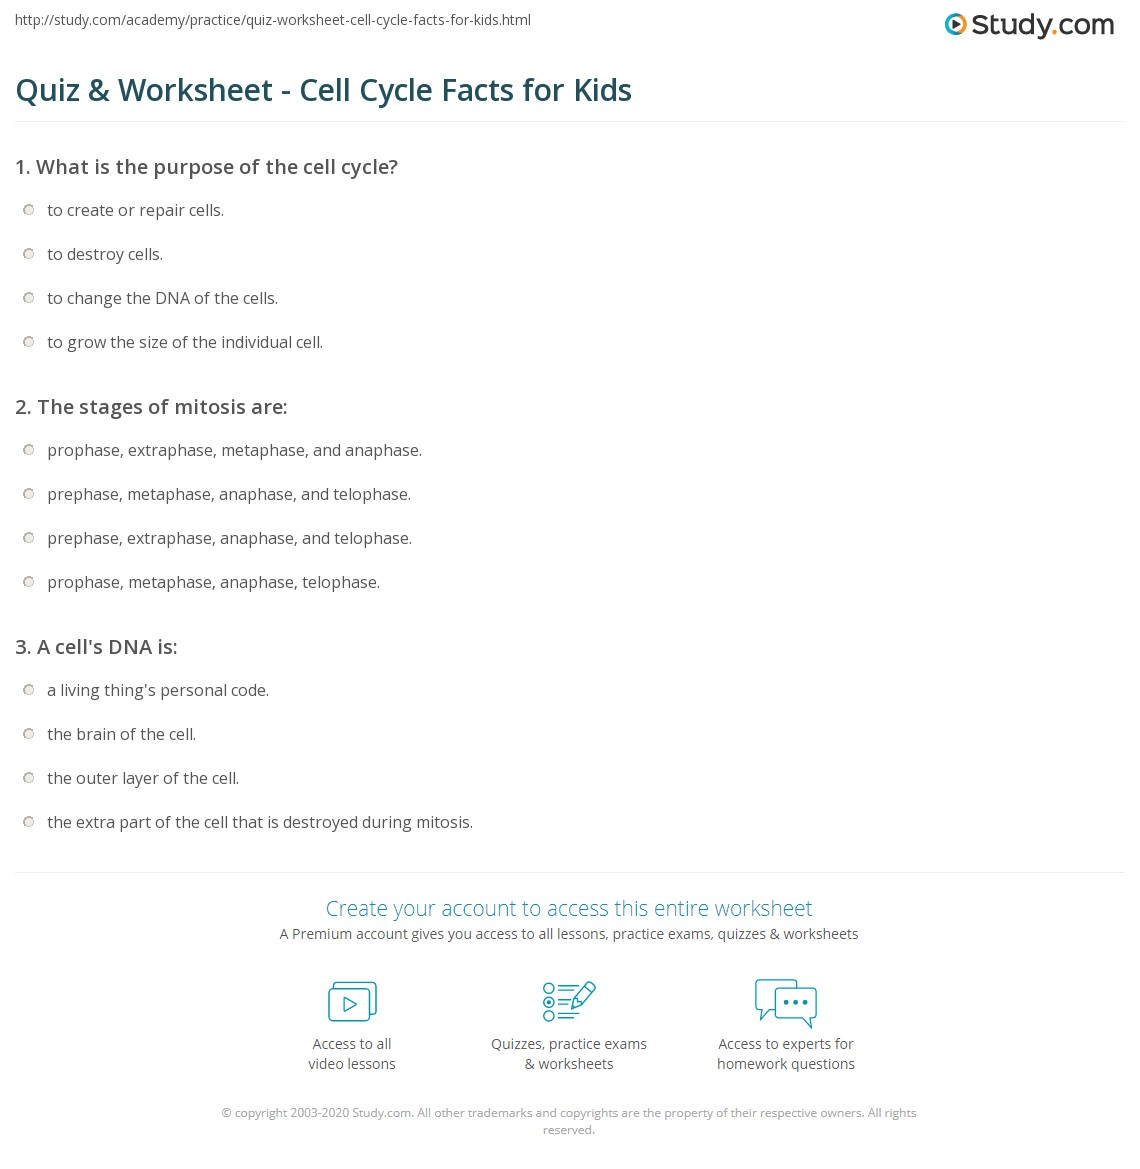 Virtual Lab The Cell Cycle And Cancer Worksheet Answers Sheet Page – Virtual Lab the Cell Cycle and Cancer Worksheet